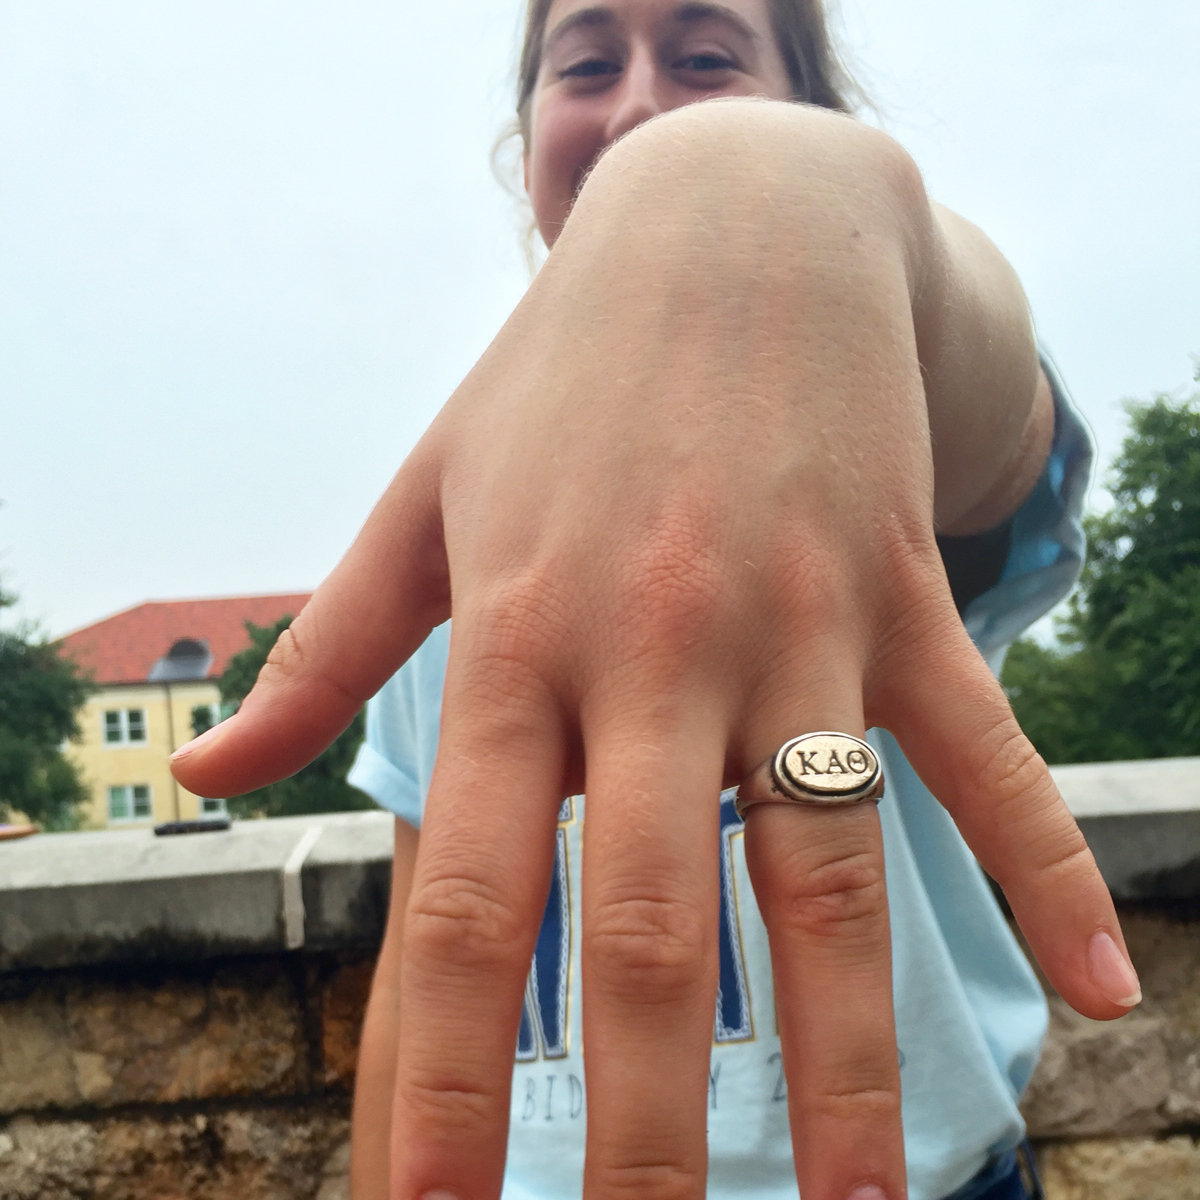 monogram sorority ring